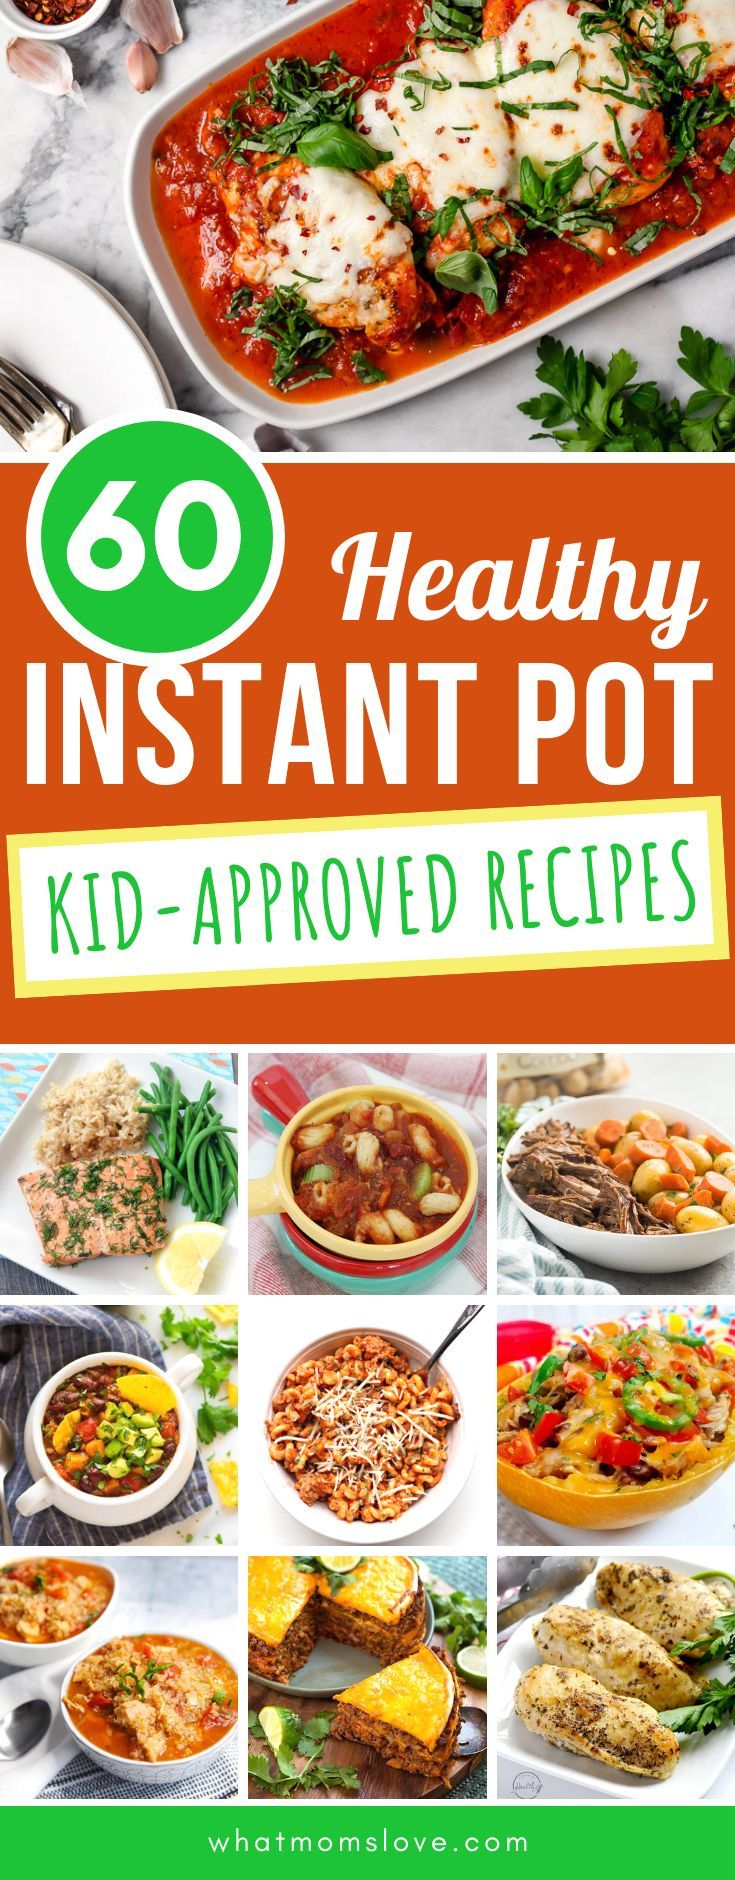 60 Kid-Friendly, Healthy Instant Pot Recipes Your Whole Family Will Enjoy images